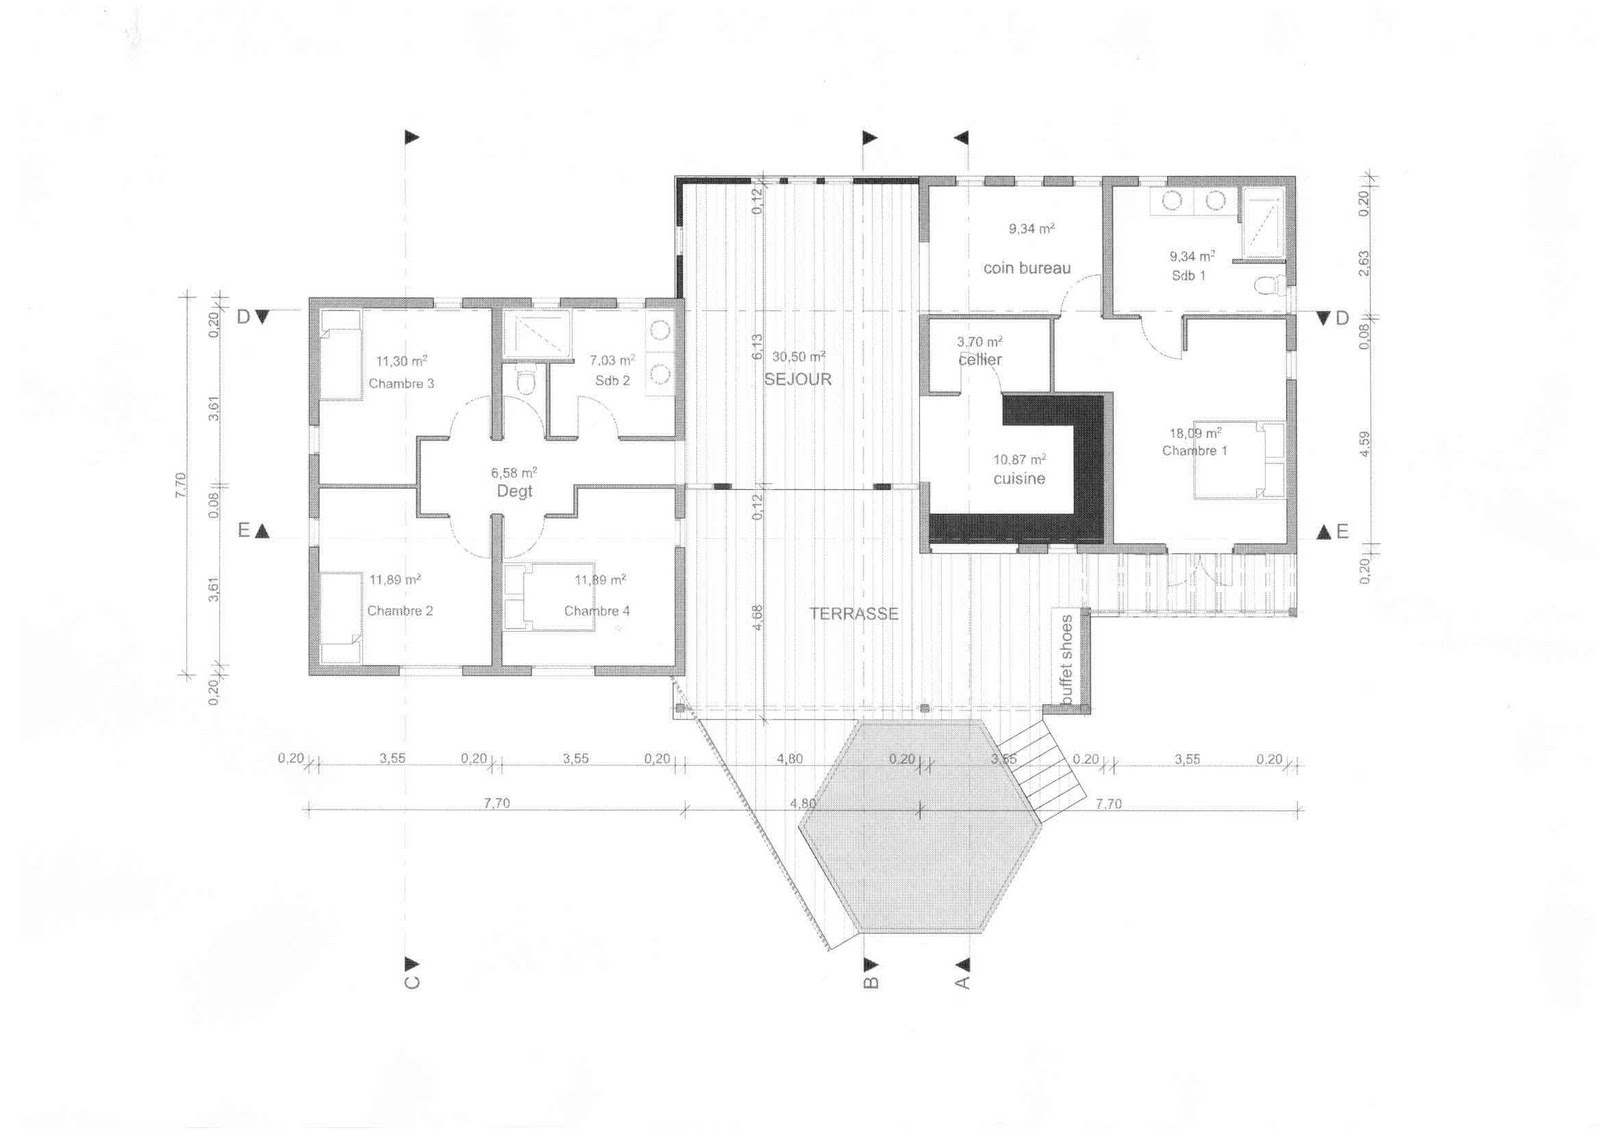 Plan de maison 3 chambres salon for Construction maison 5 chambres